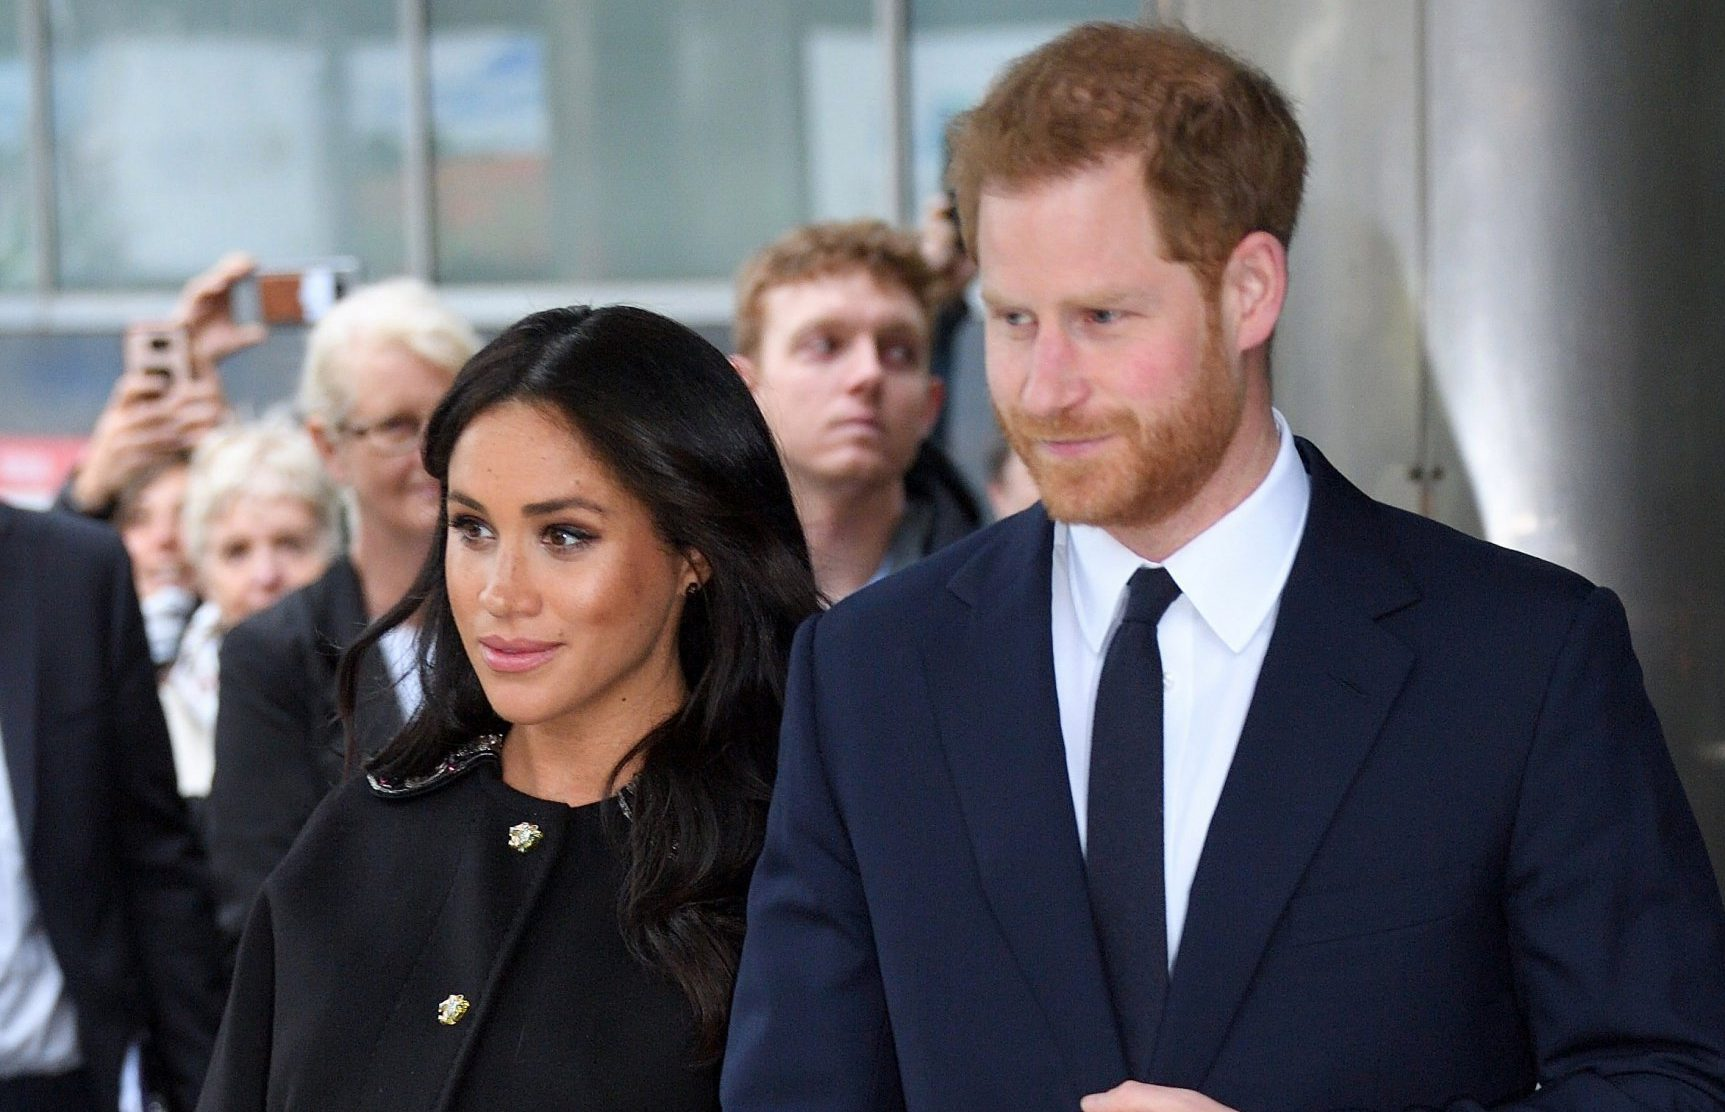 Prince Harry and Meghan Markle to celebrate royal baby's arrival privately and will keep birth details a secret